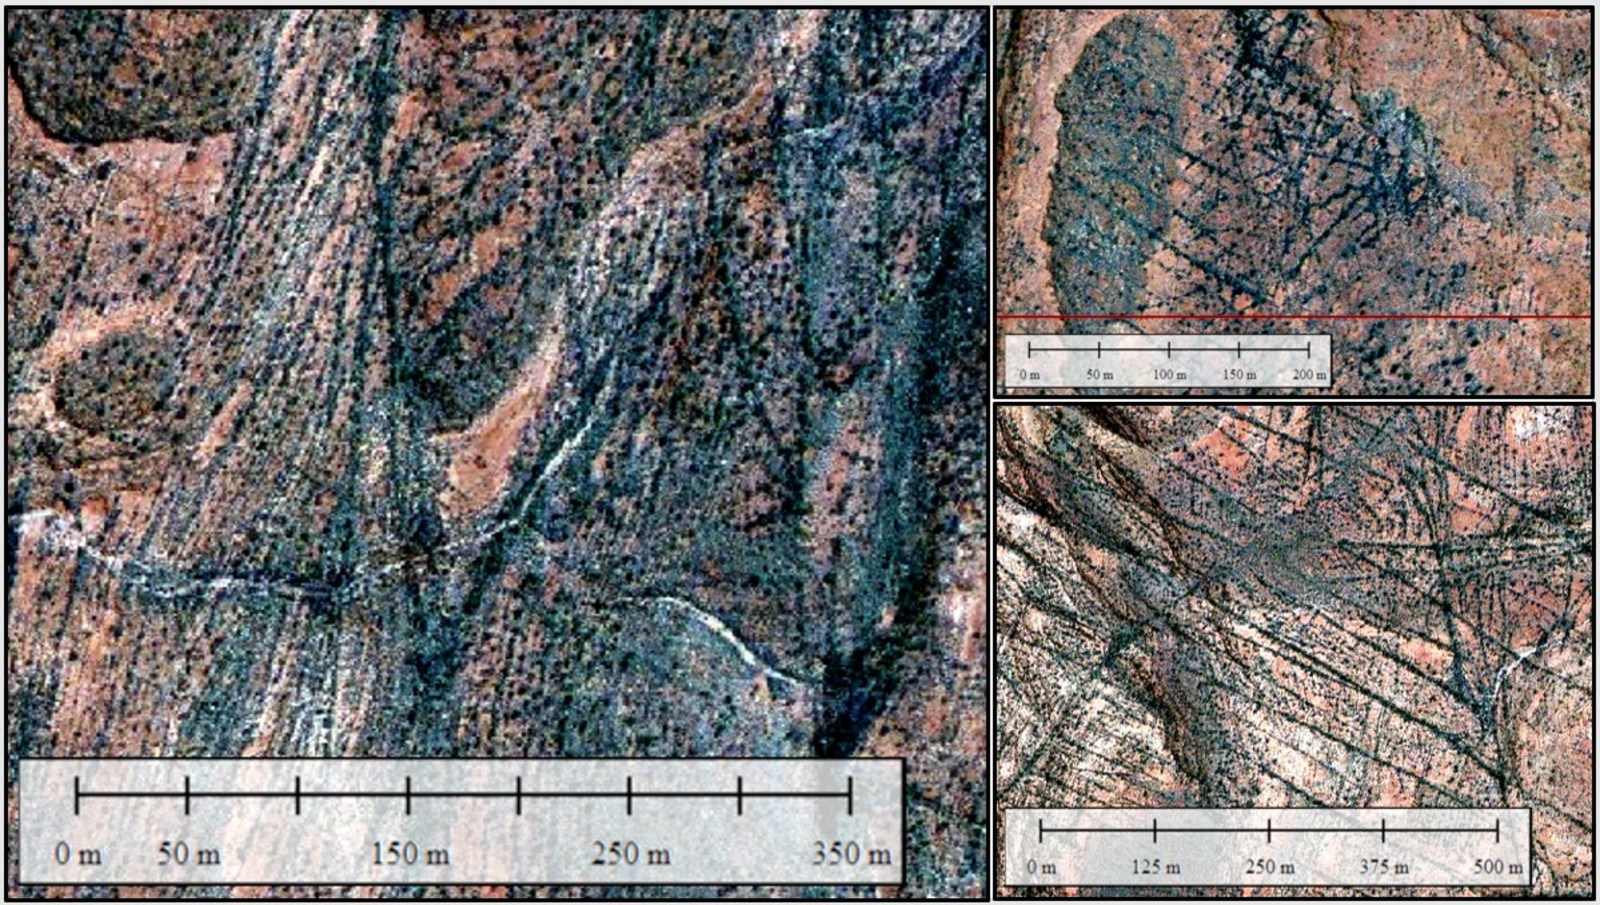 Figure 5. Selected images of Impact 5 locations showing intense, fractal, low-displacement faults and fractures.